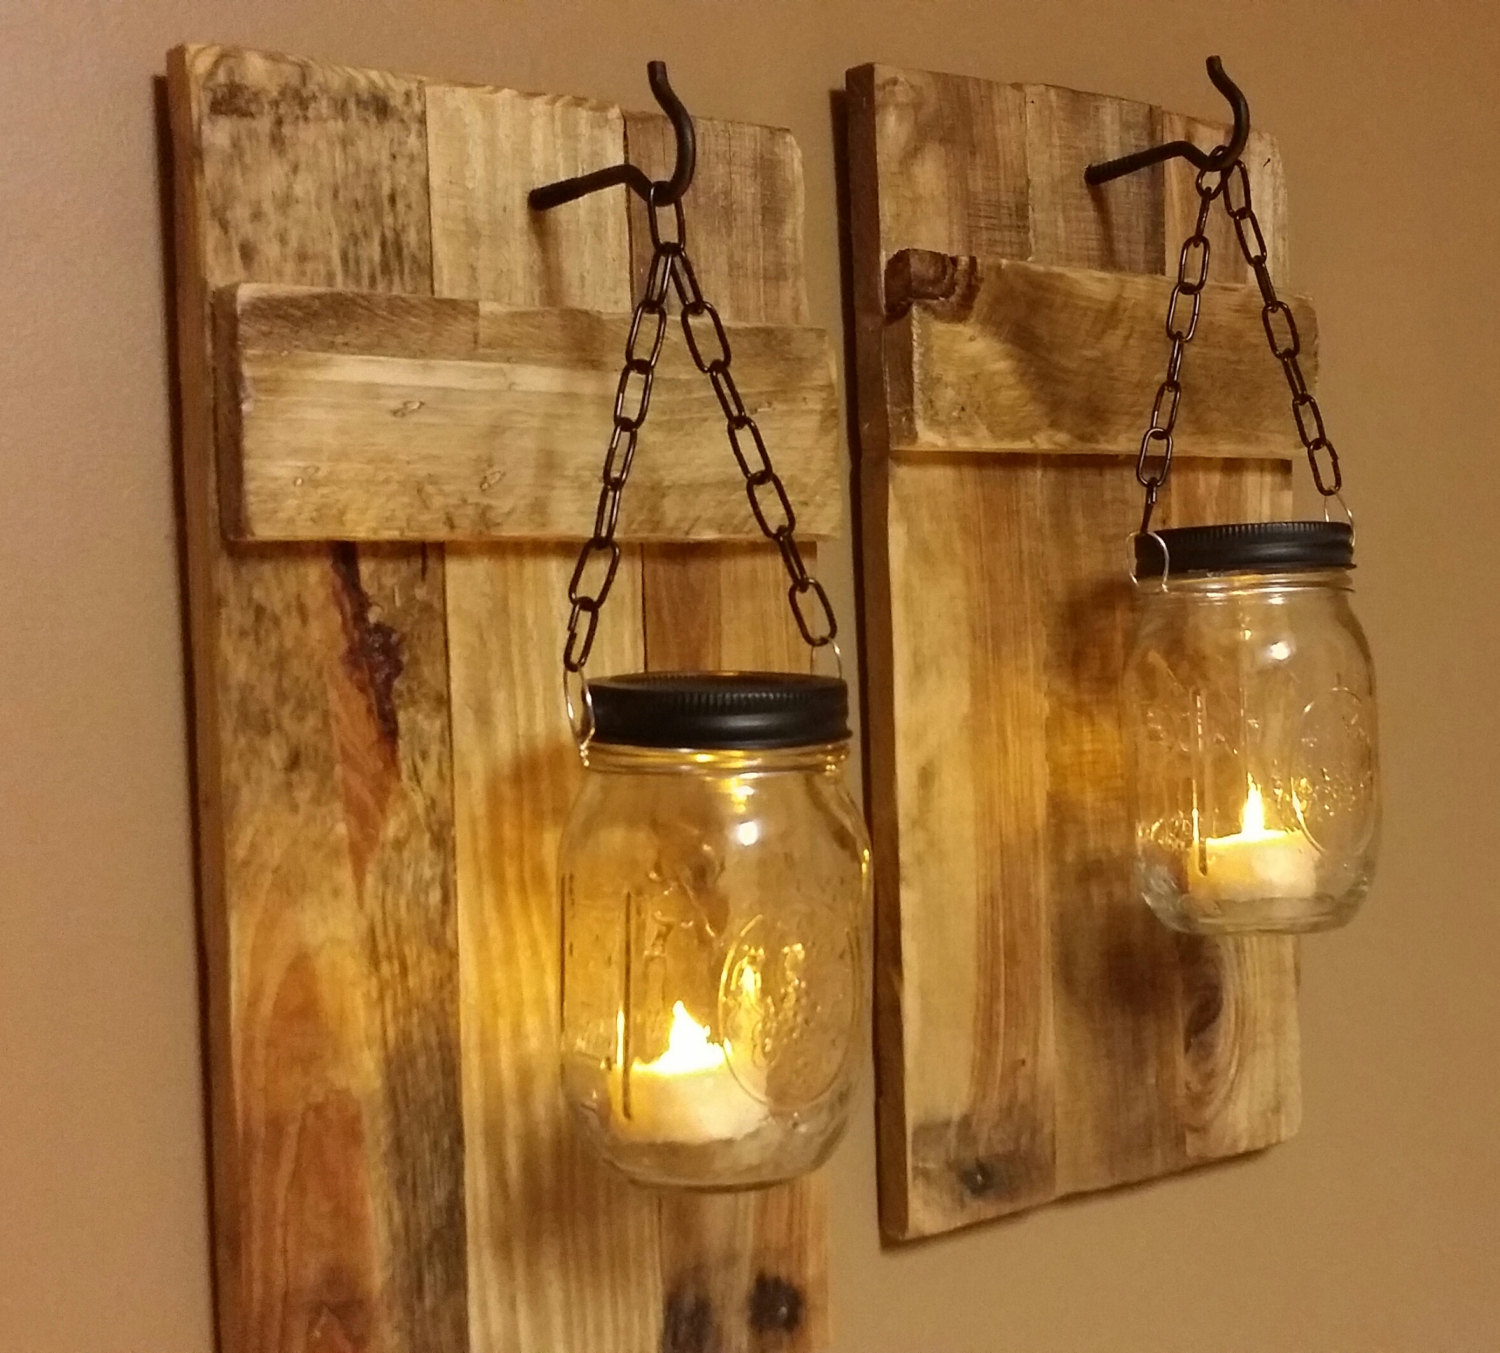 How To Make Wall Sconces For Candles : DIY Mason Jar Sconce Making Tutorial - Mason Jar Crafts